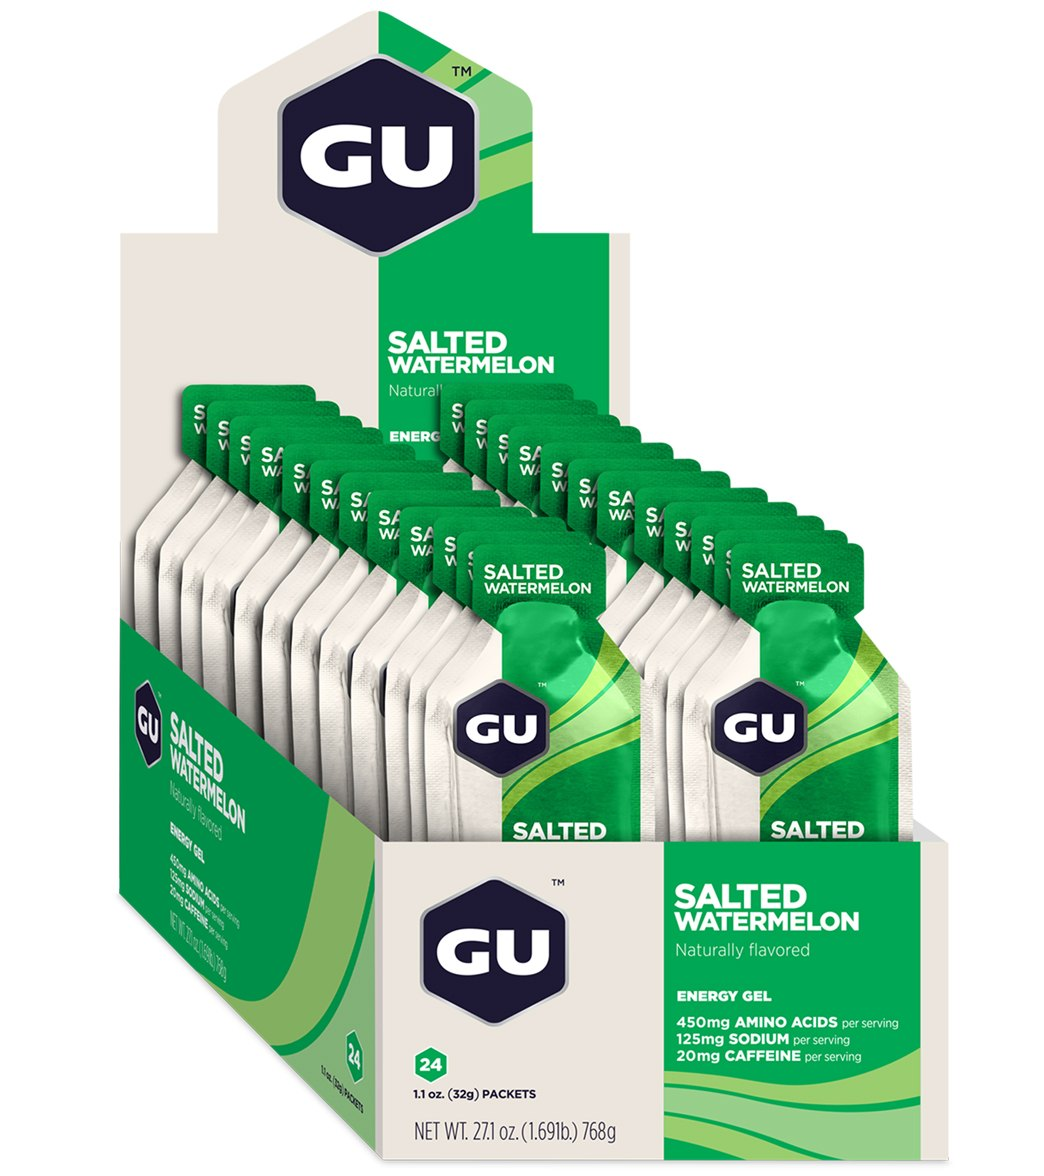 Energy Gel Supplements For Swimmers